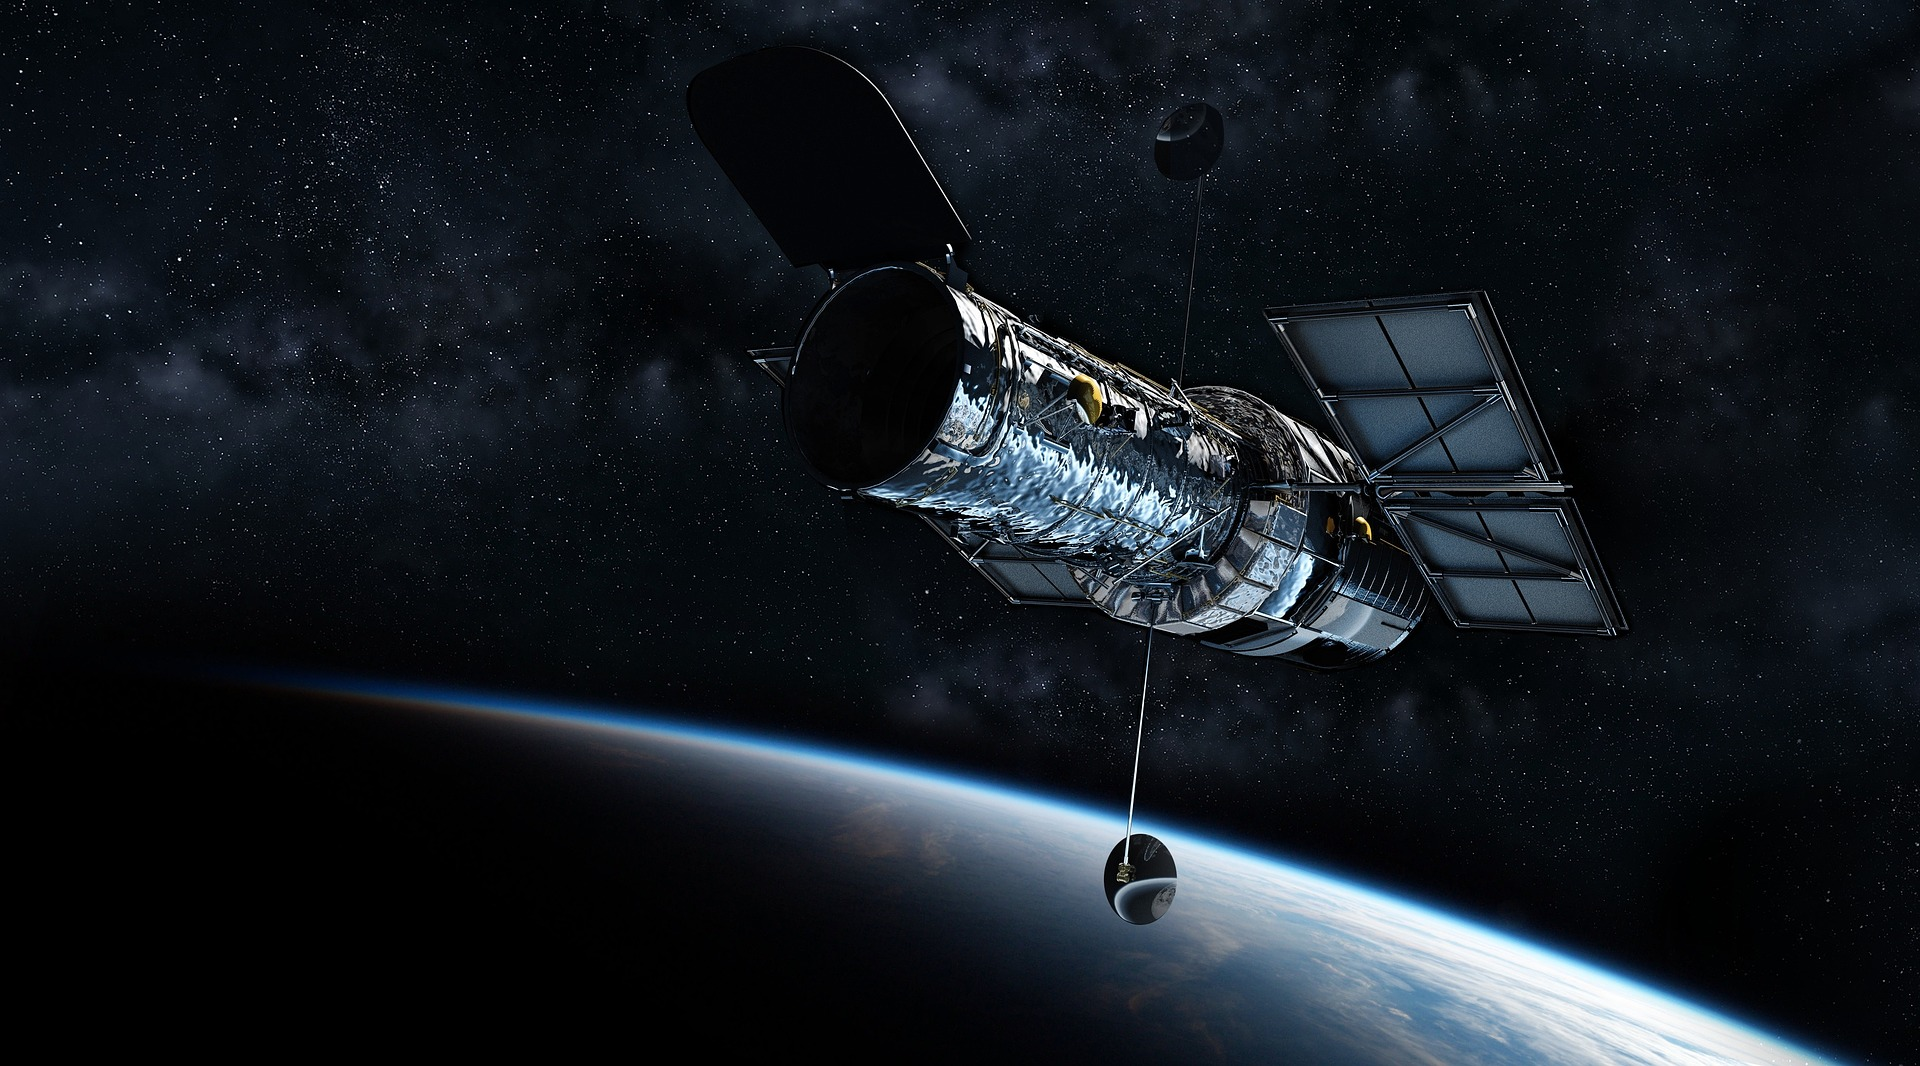 A beginners guide to Hubble Telescope